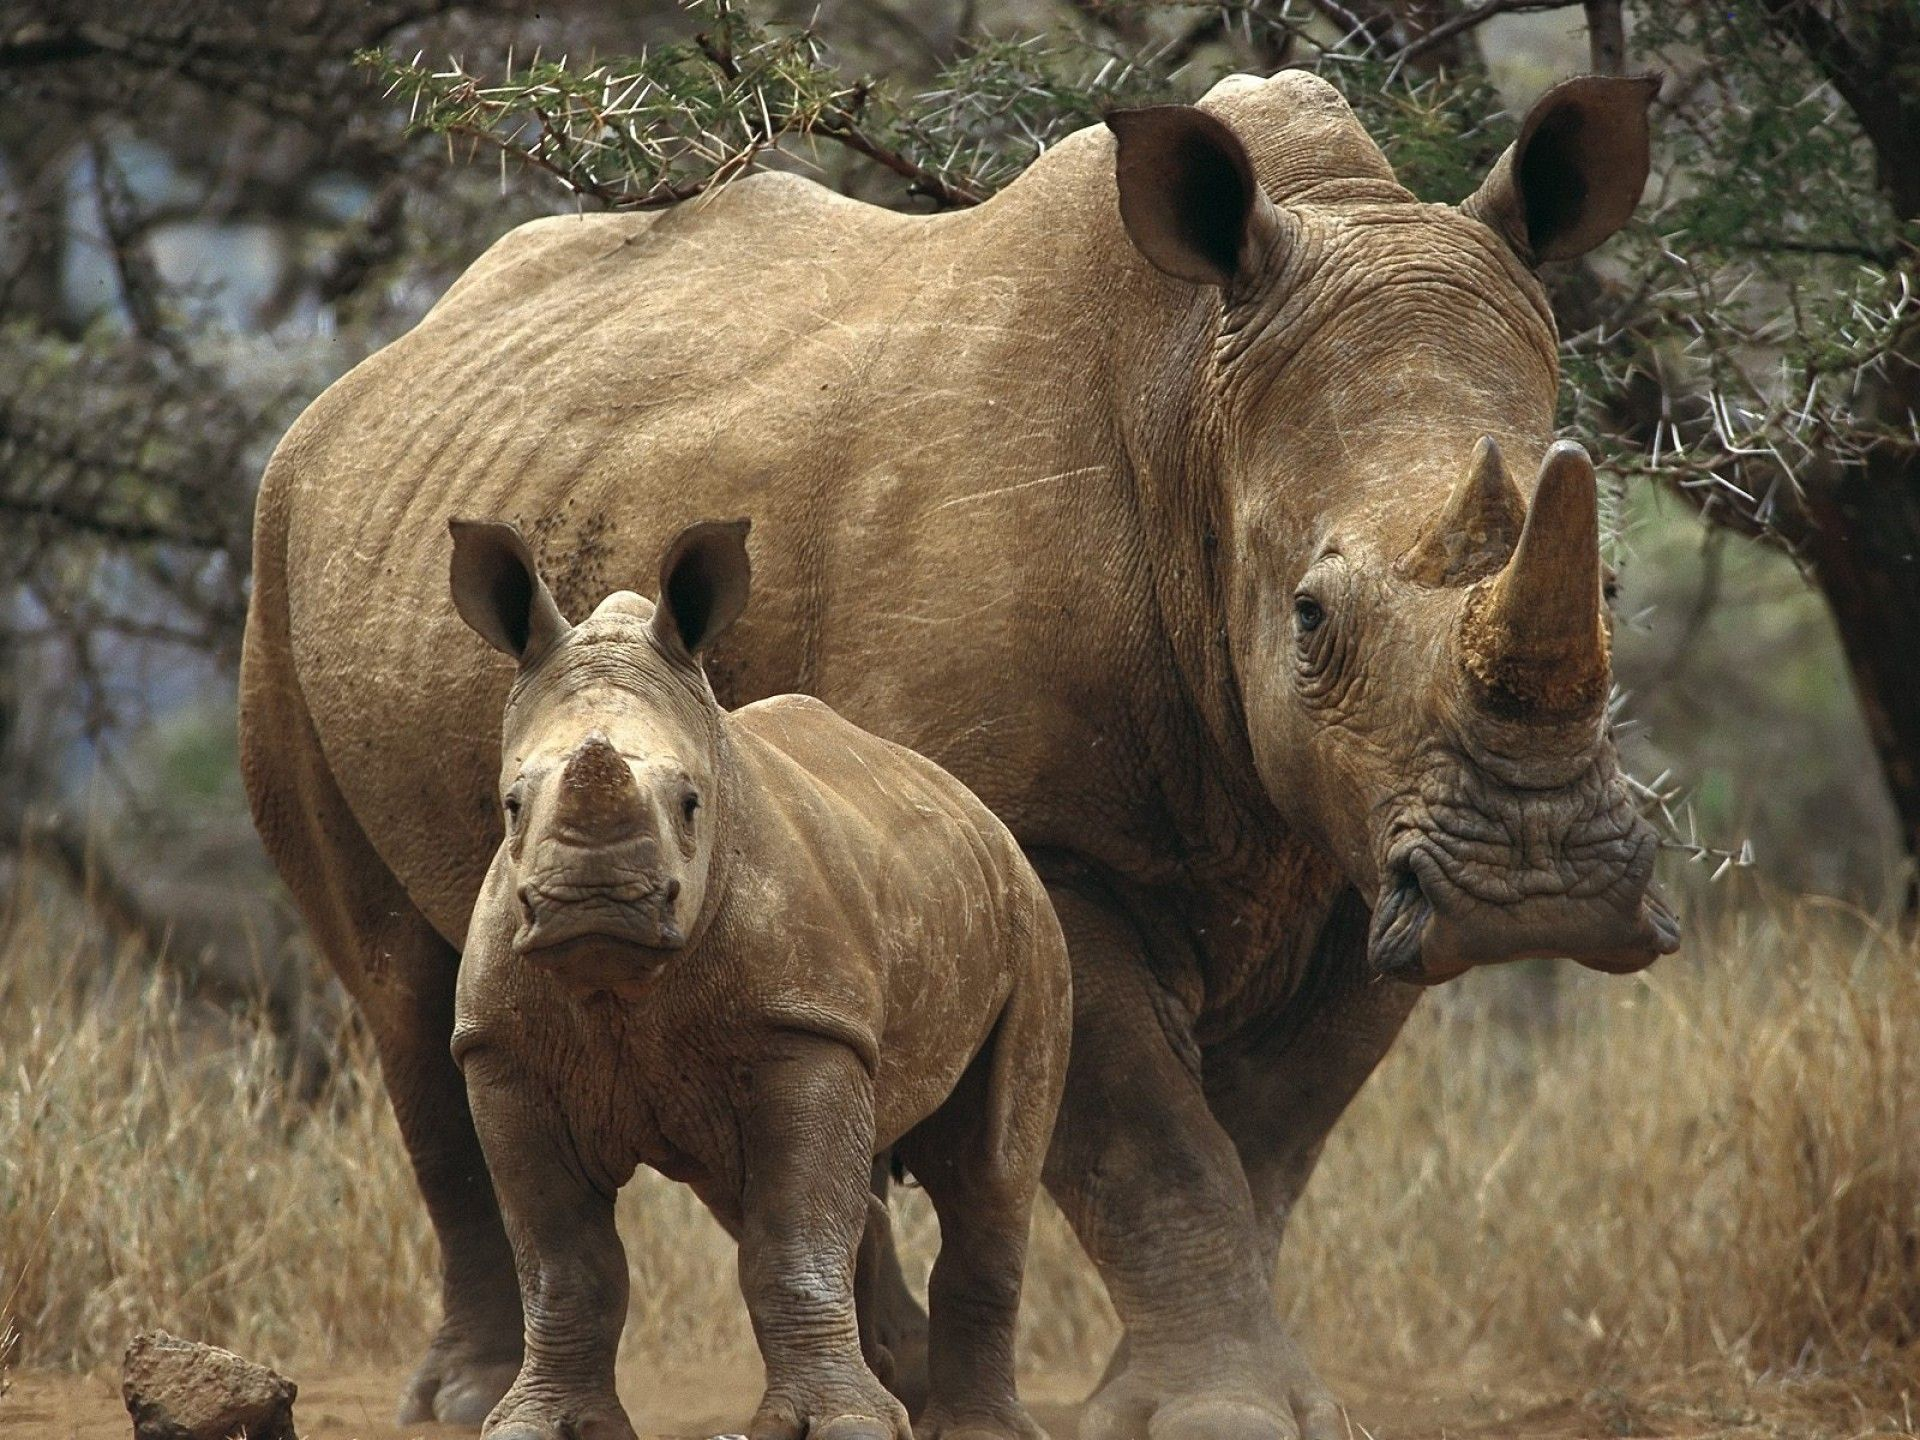 animal rhino wallpaper | rinoceronte | pinterest | rhinos and animal